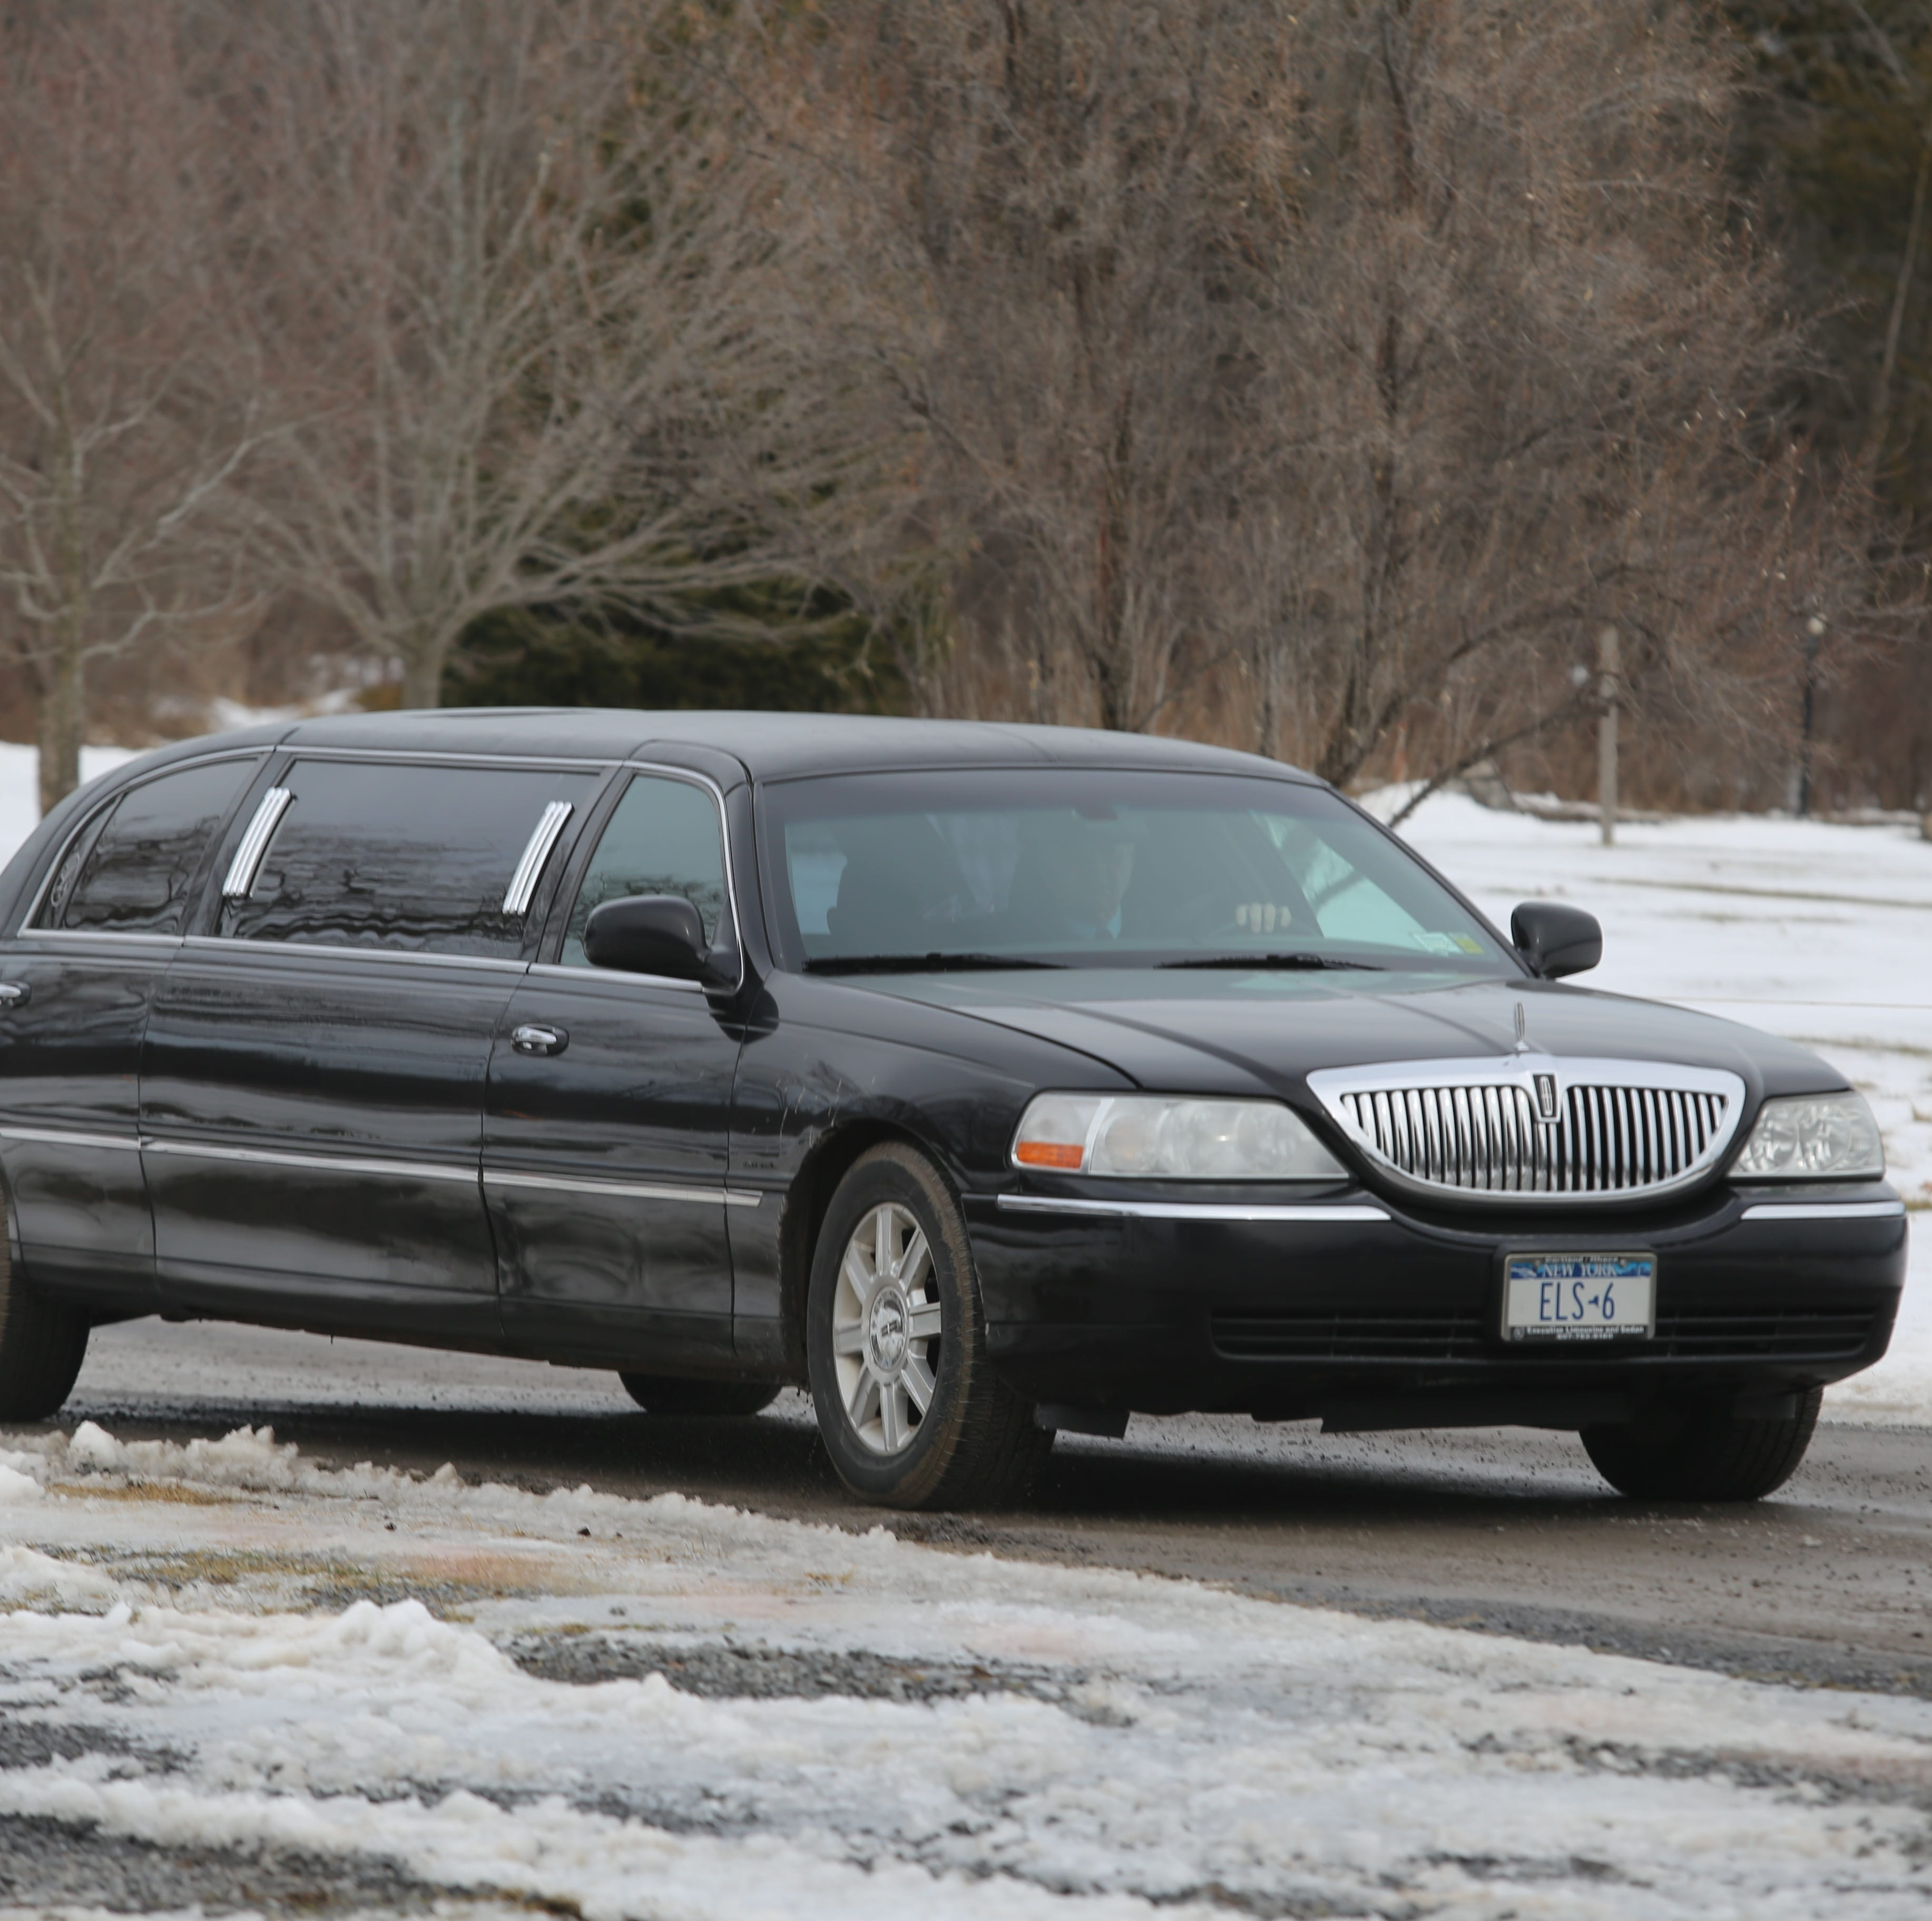 After most deadly crash in a decade, limo rules still haphazard as prom season nears